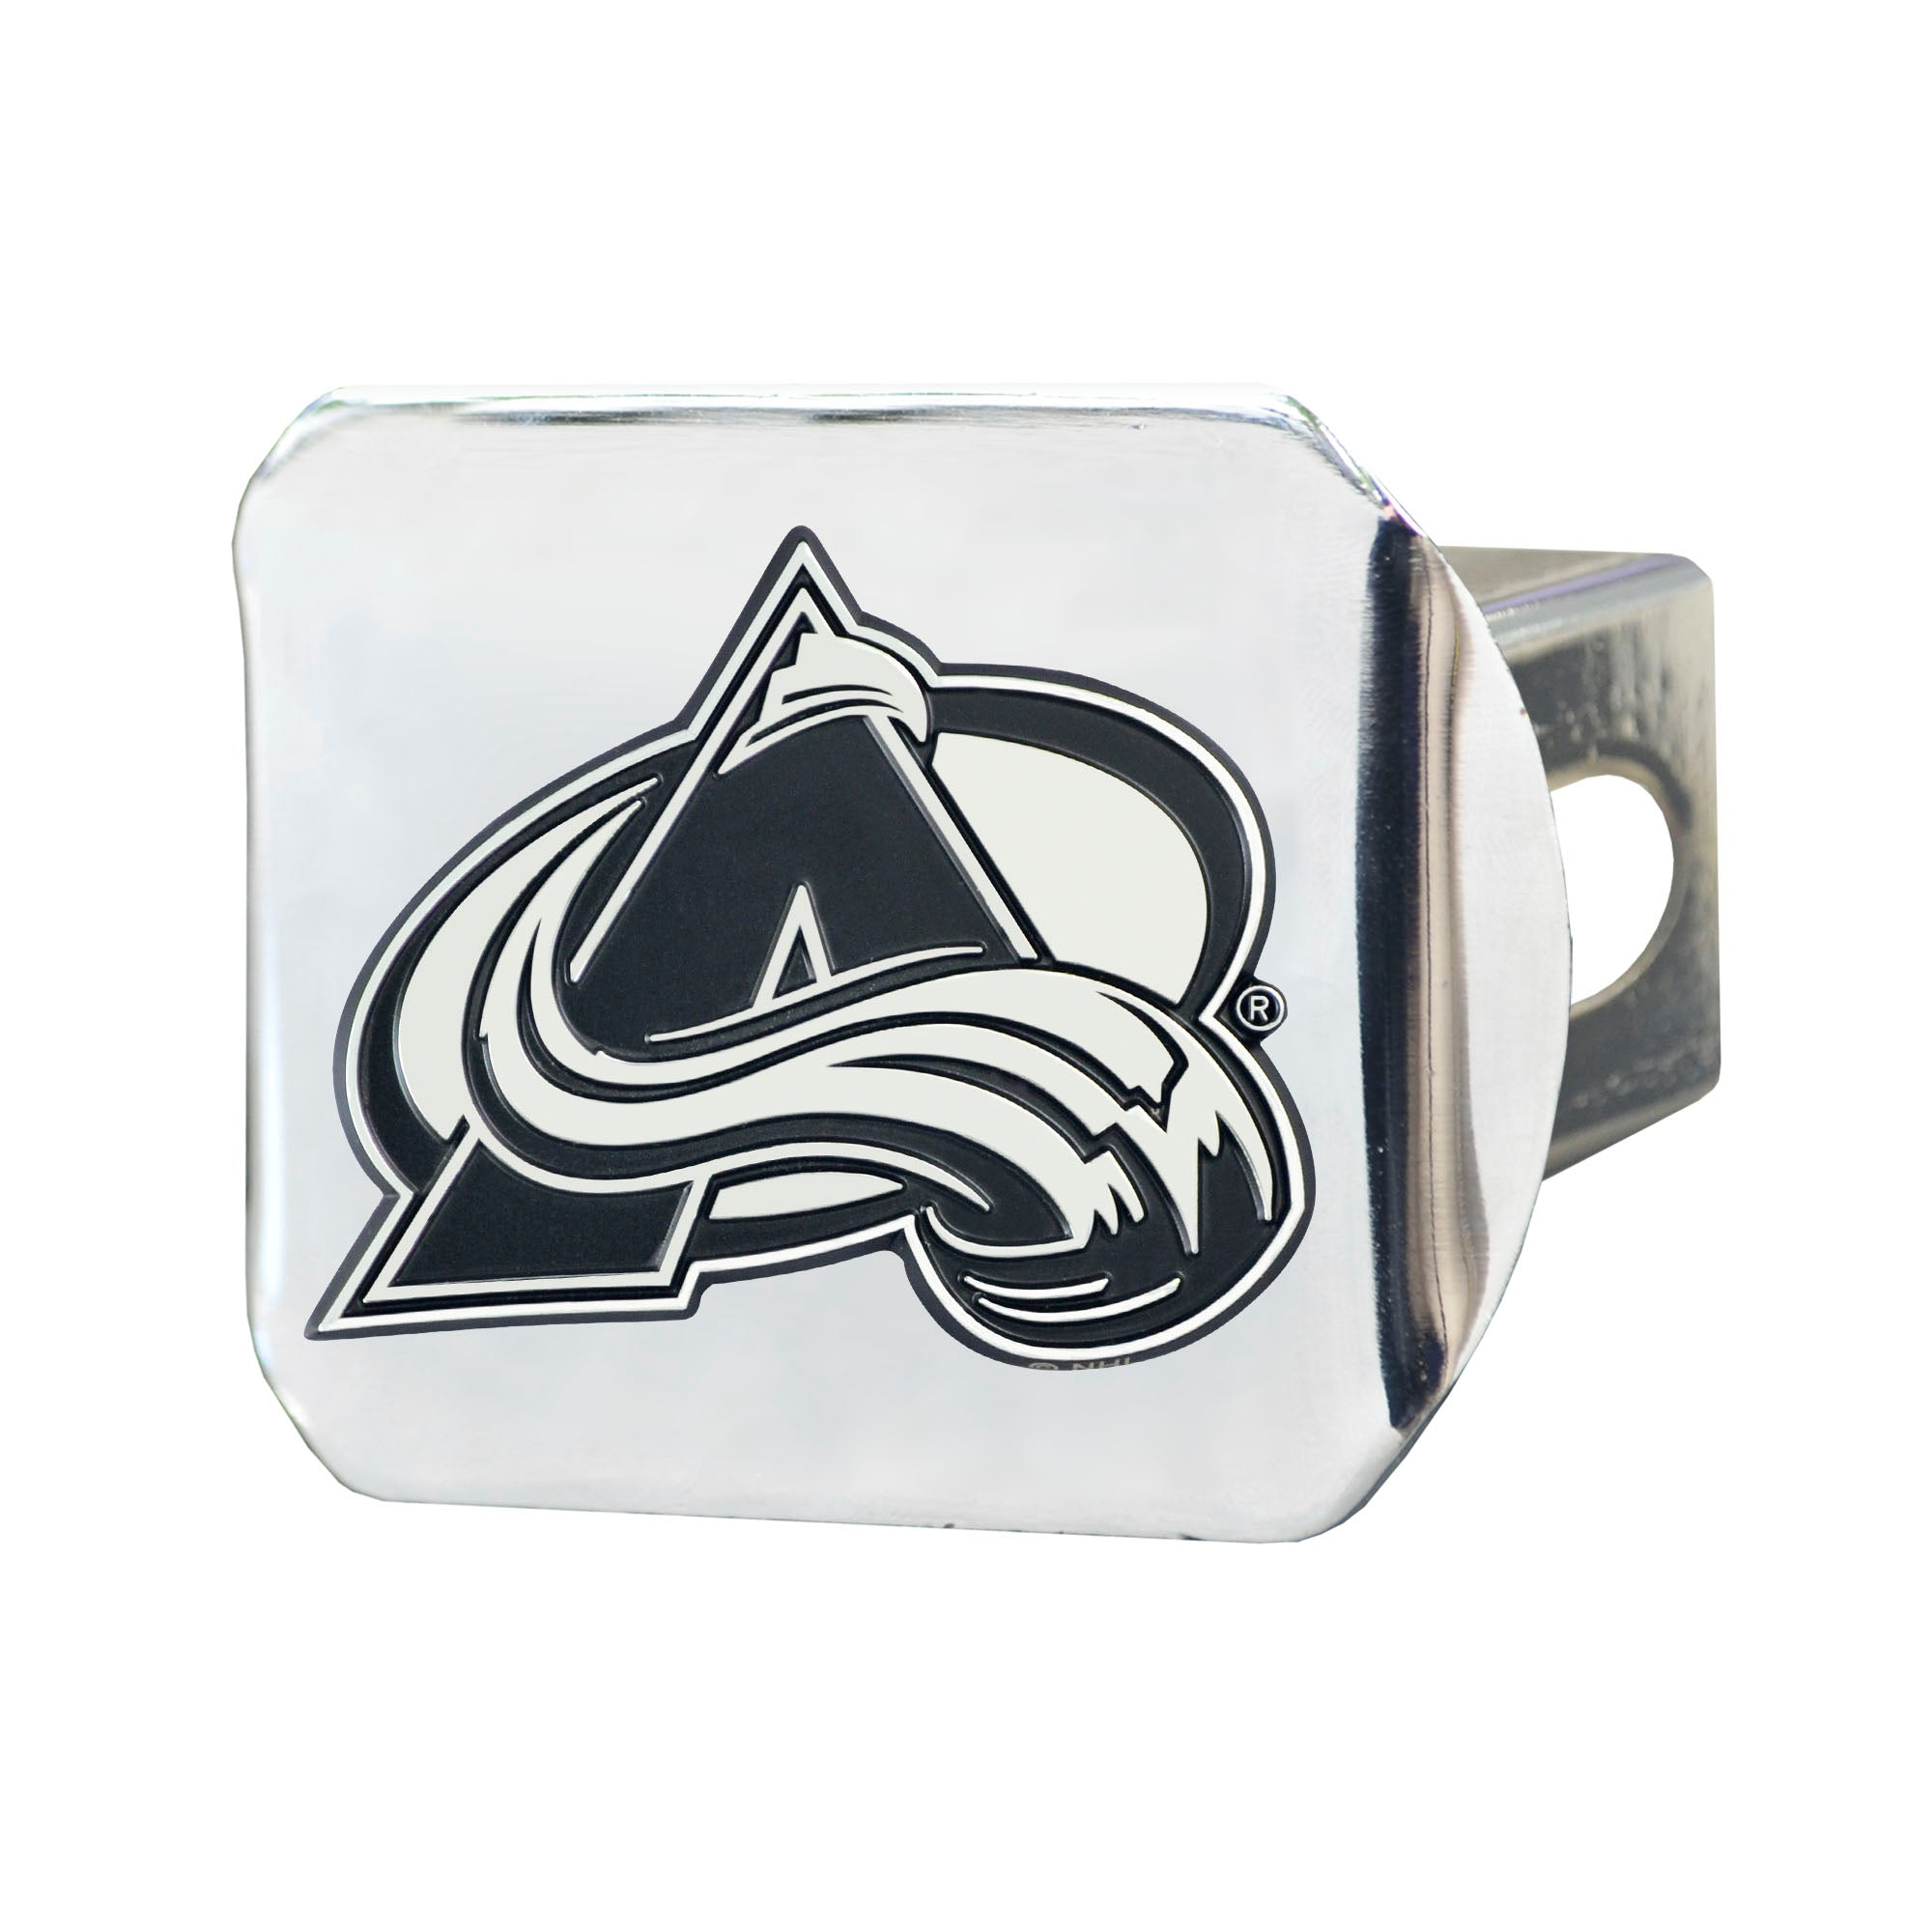 "NHL - Colorado Avalanche Hitch Cover - Chrome on Chrome 3.4""x4"""